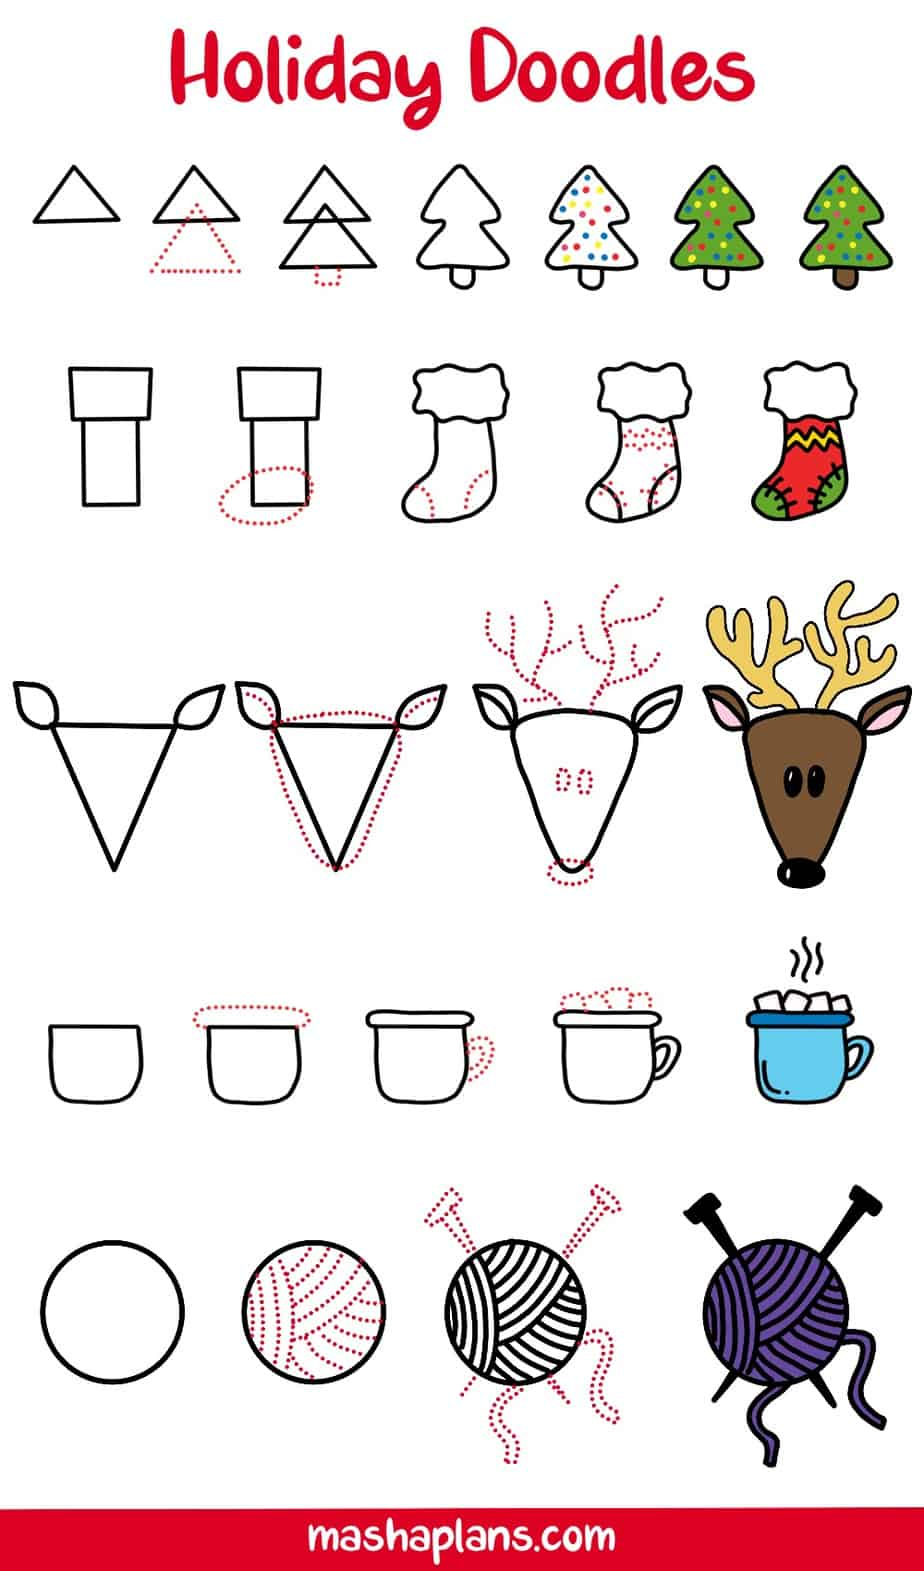 31+ Christmas Doodles For Your Bullet